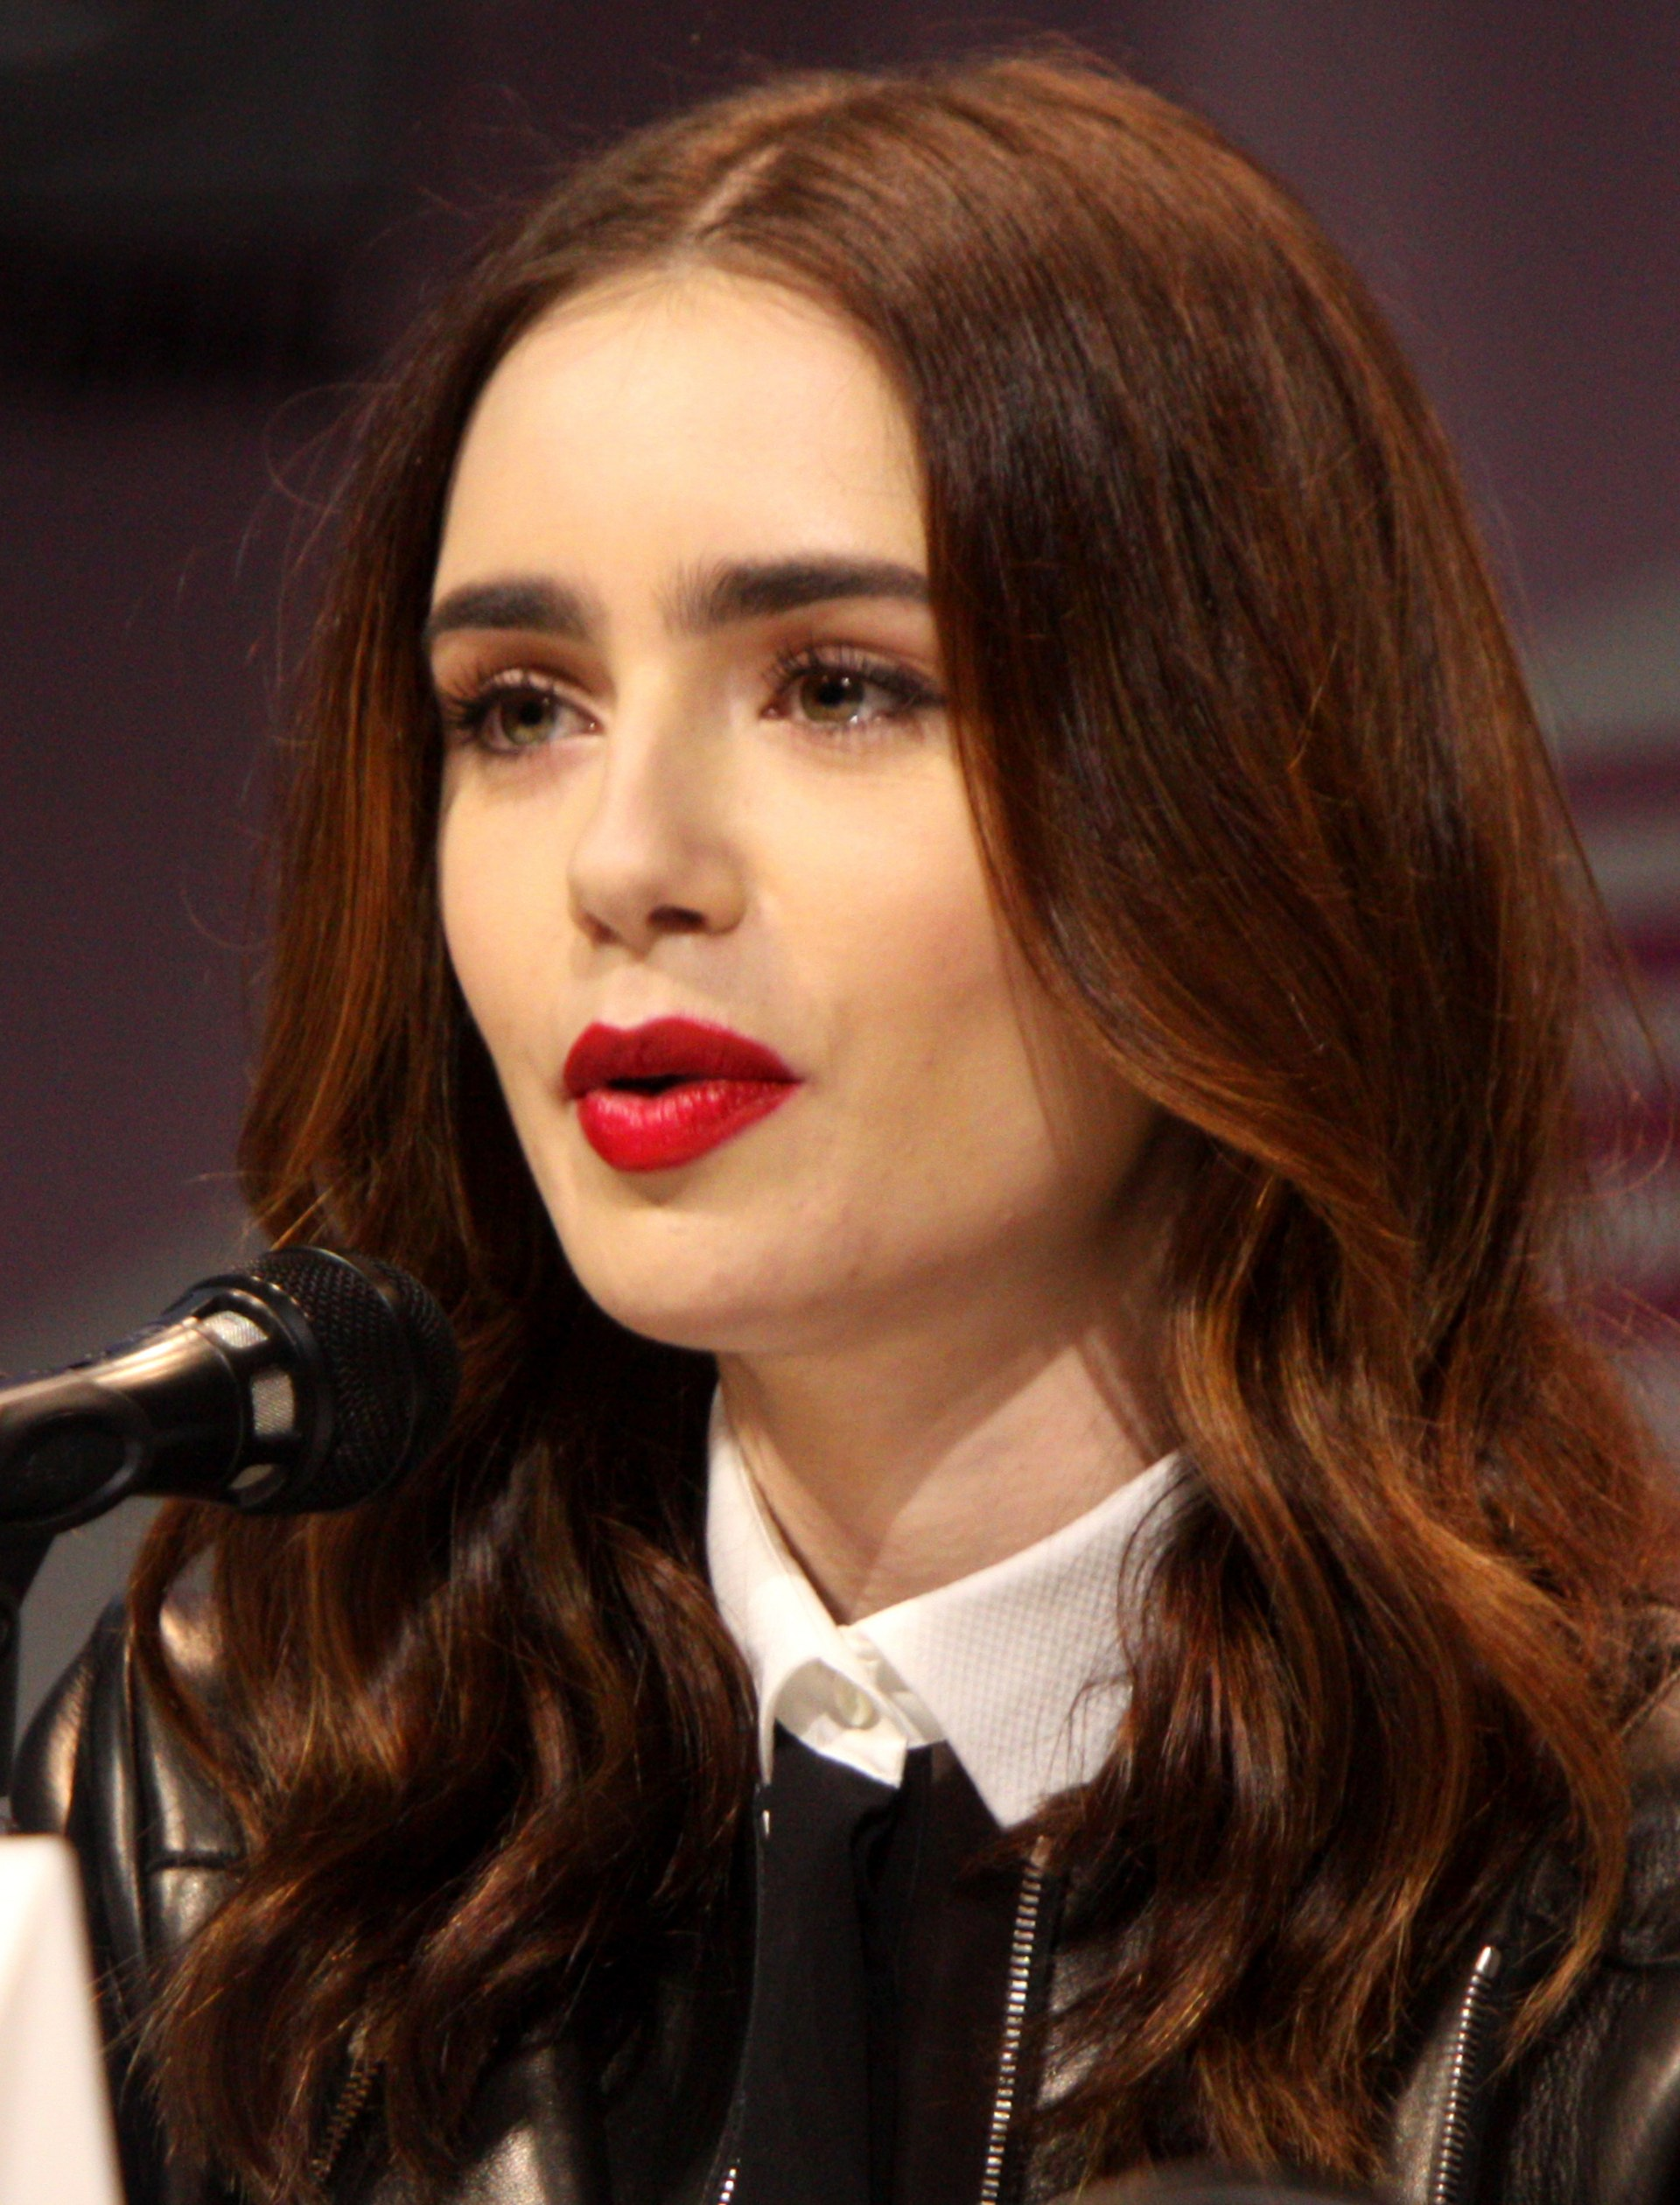 Lily Collins - Wikiped...